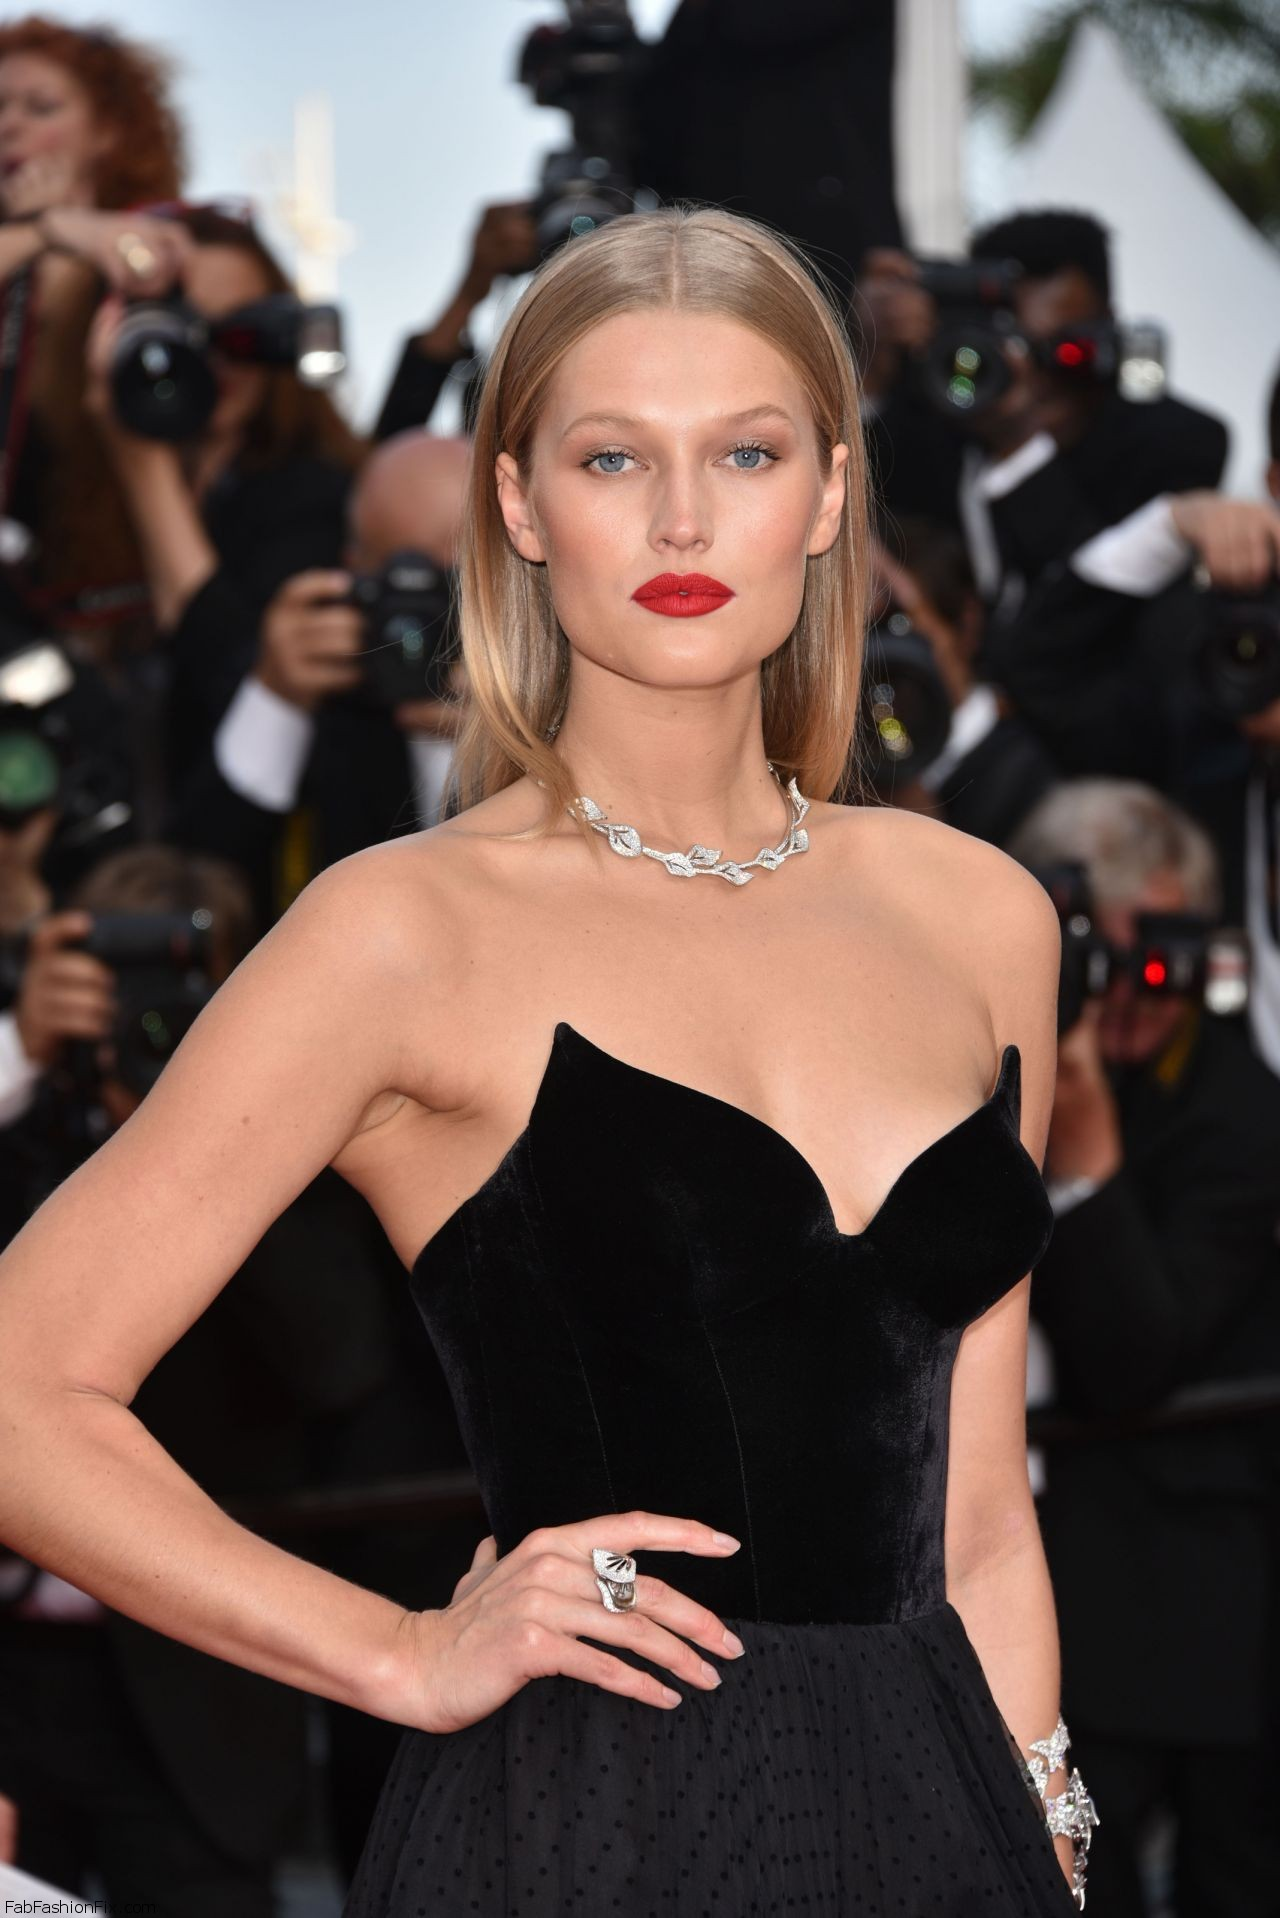 toni-garrn-the-loving-premiere-at-69th-cannes-film-festival-5-16-2016-2